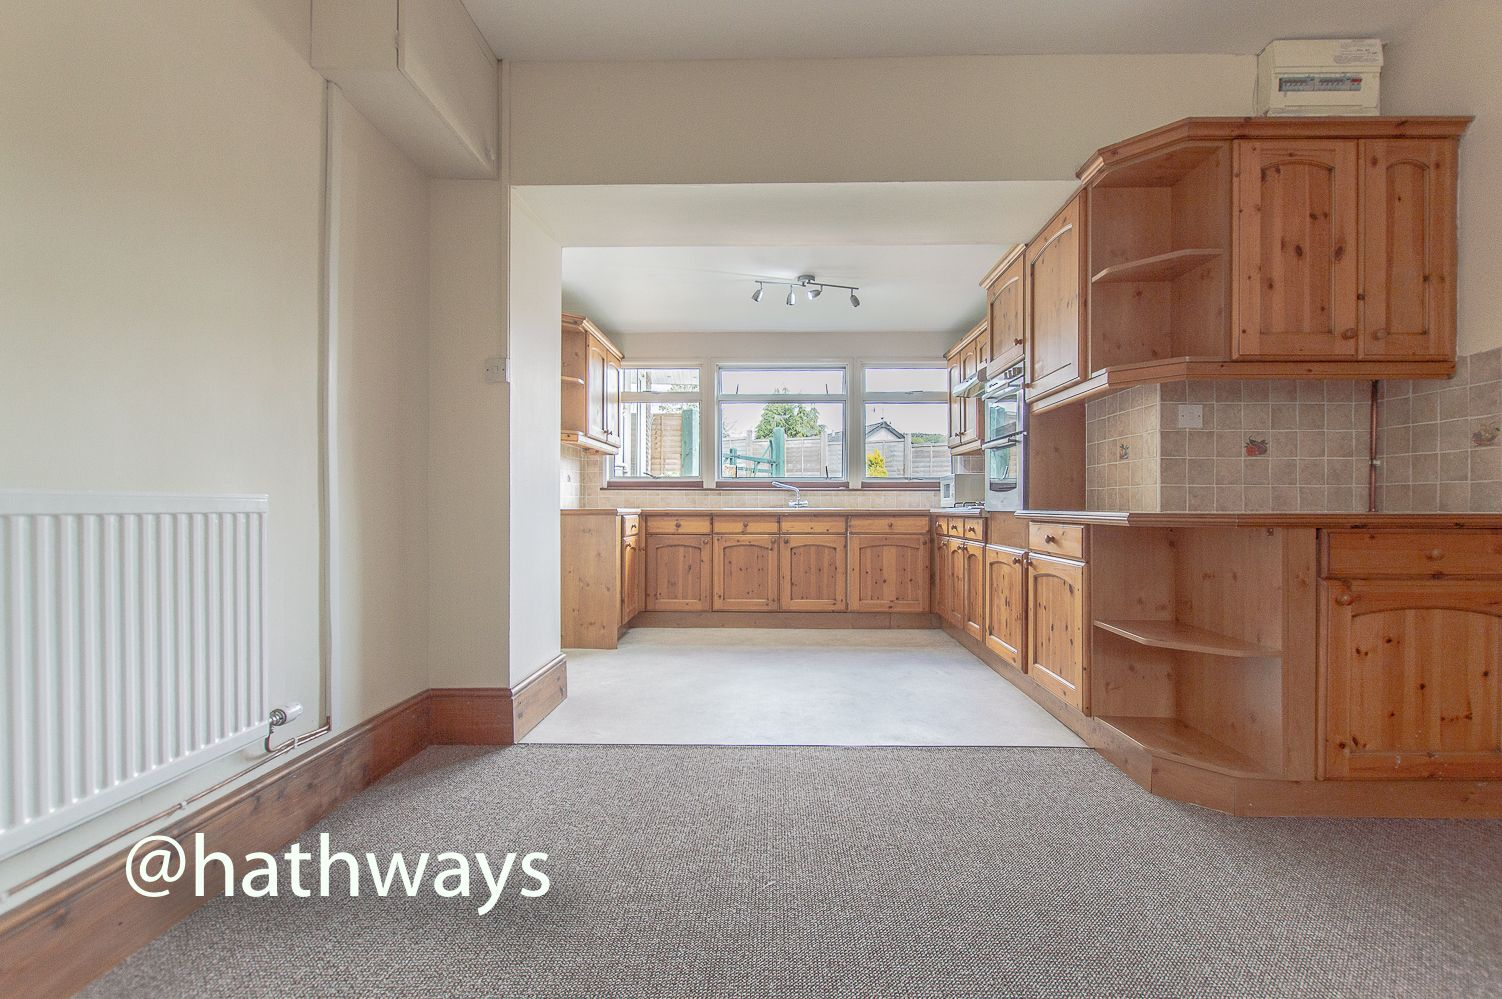 4 bed house for sale in Lower Stoney Road  - Property Image 18